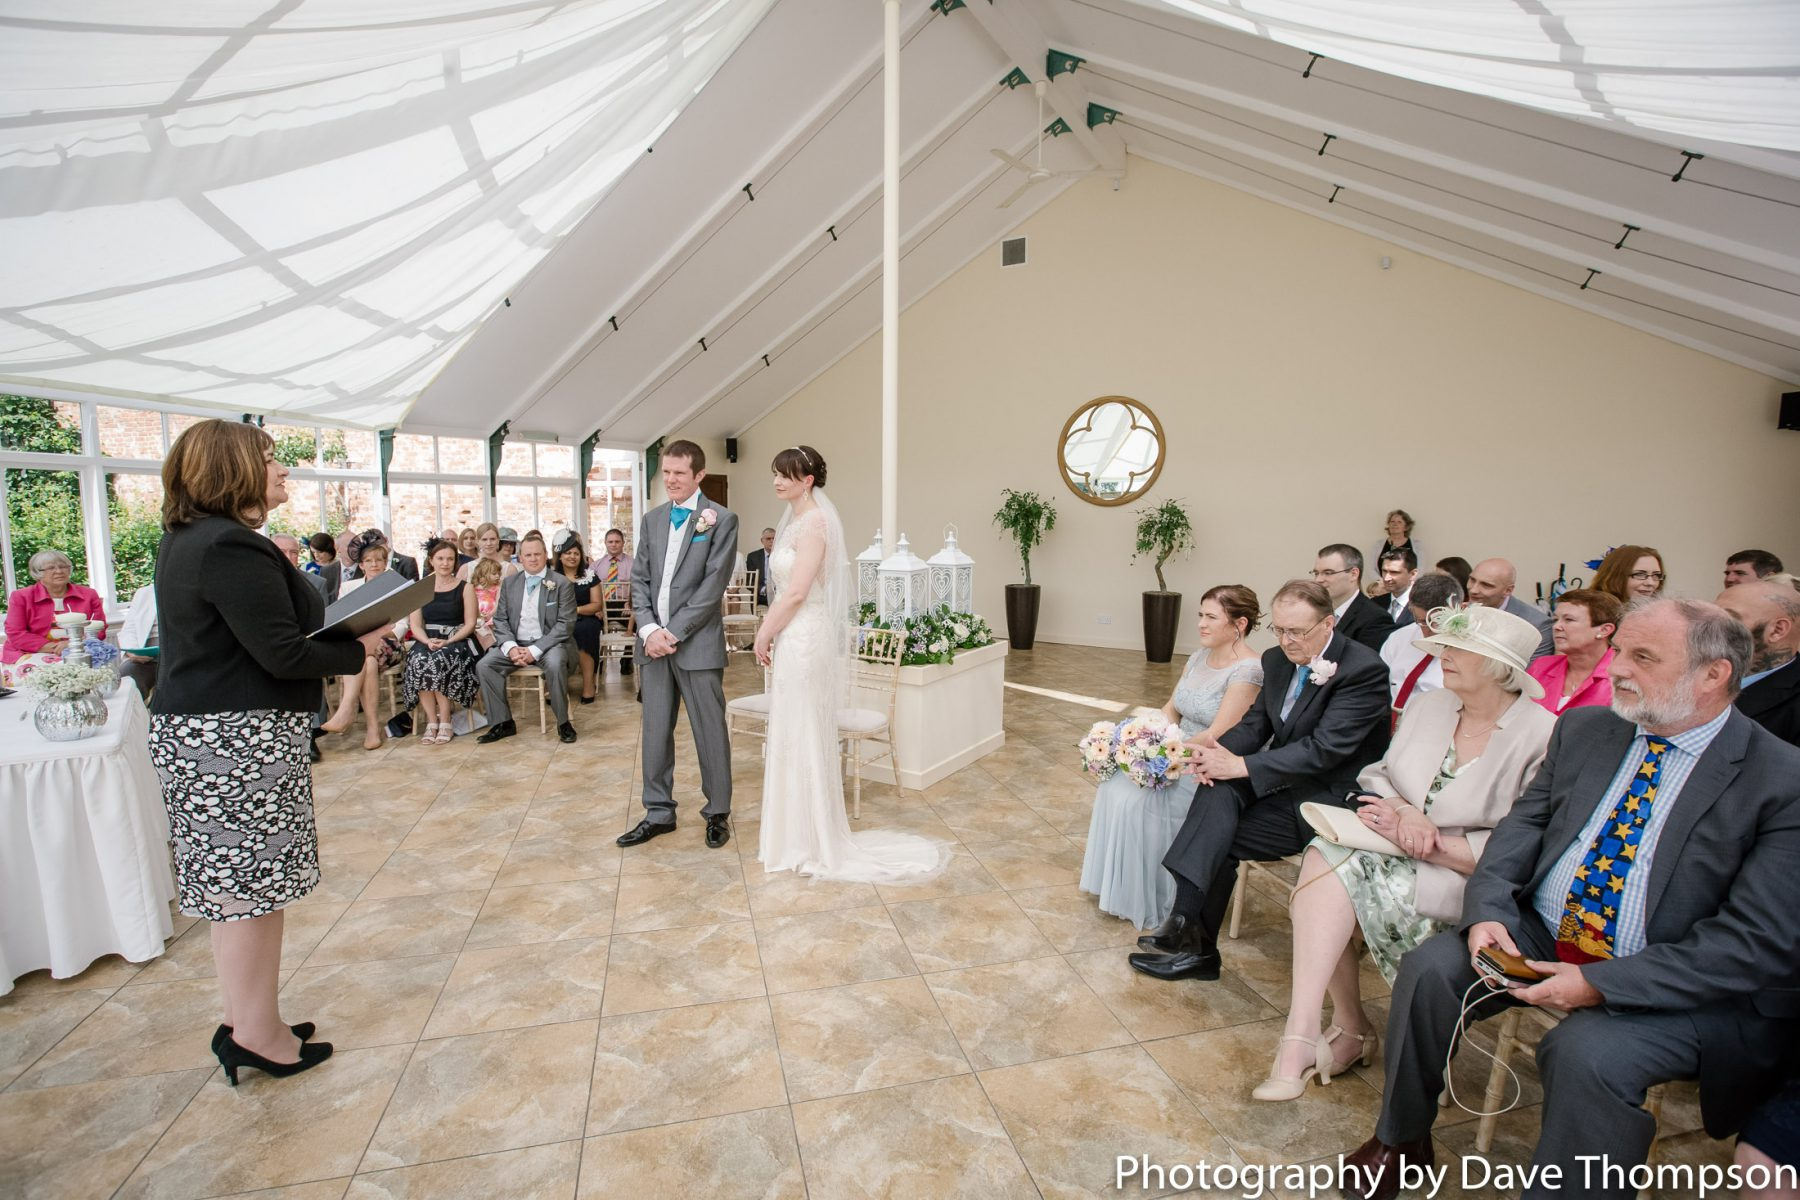 A wedding ceremony in The Edwardian Glass House at Combermere Abbey